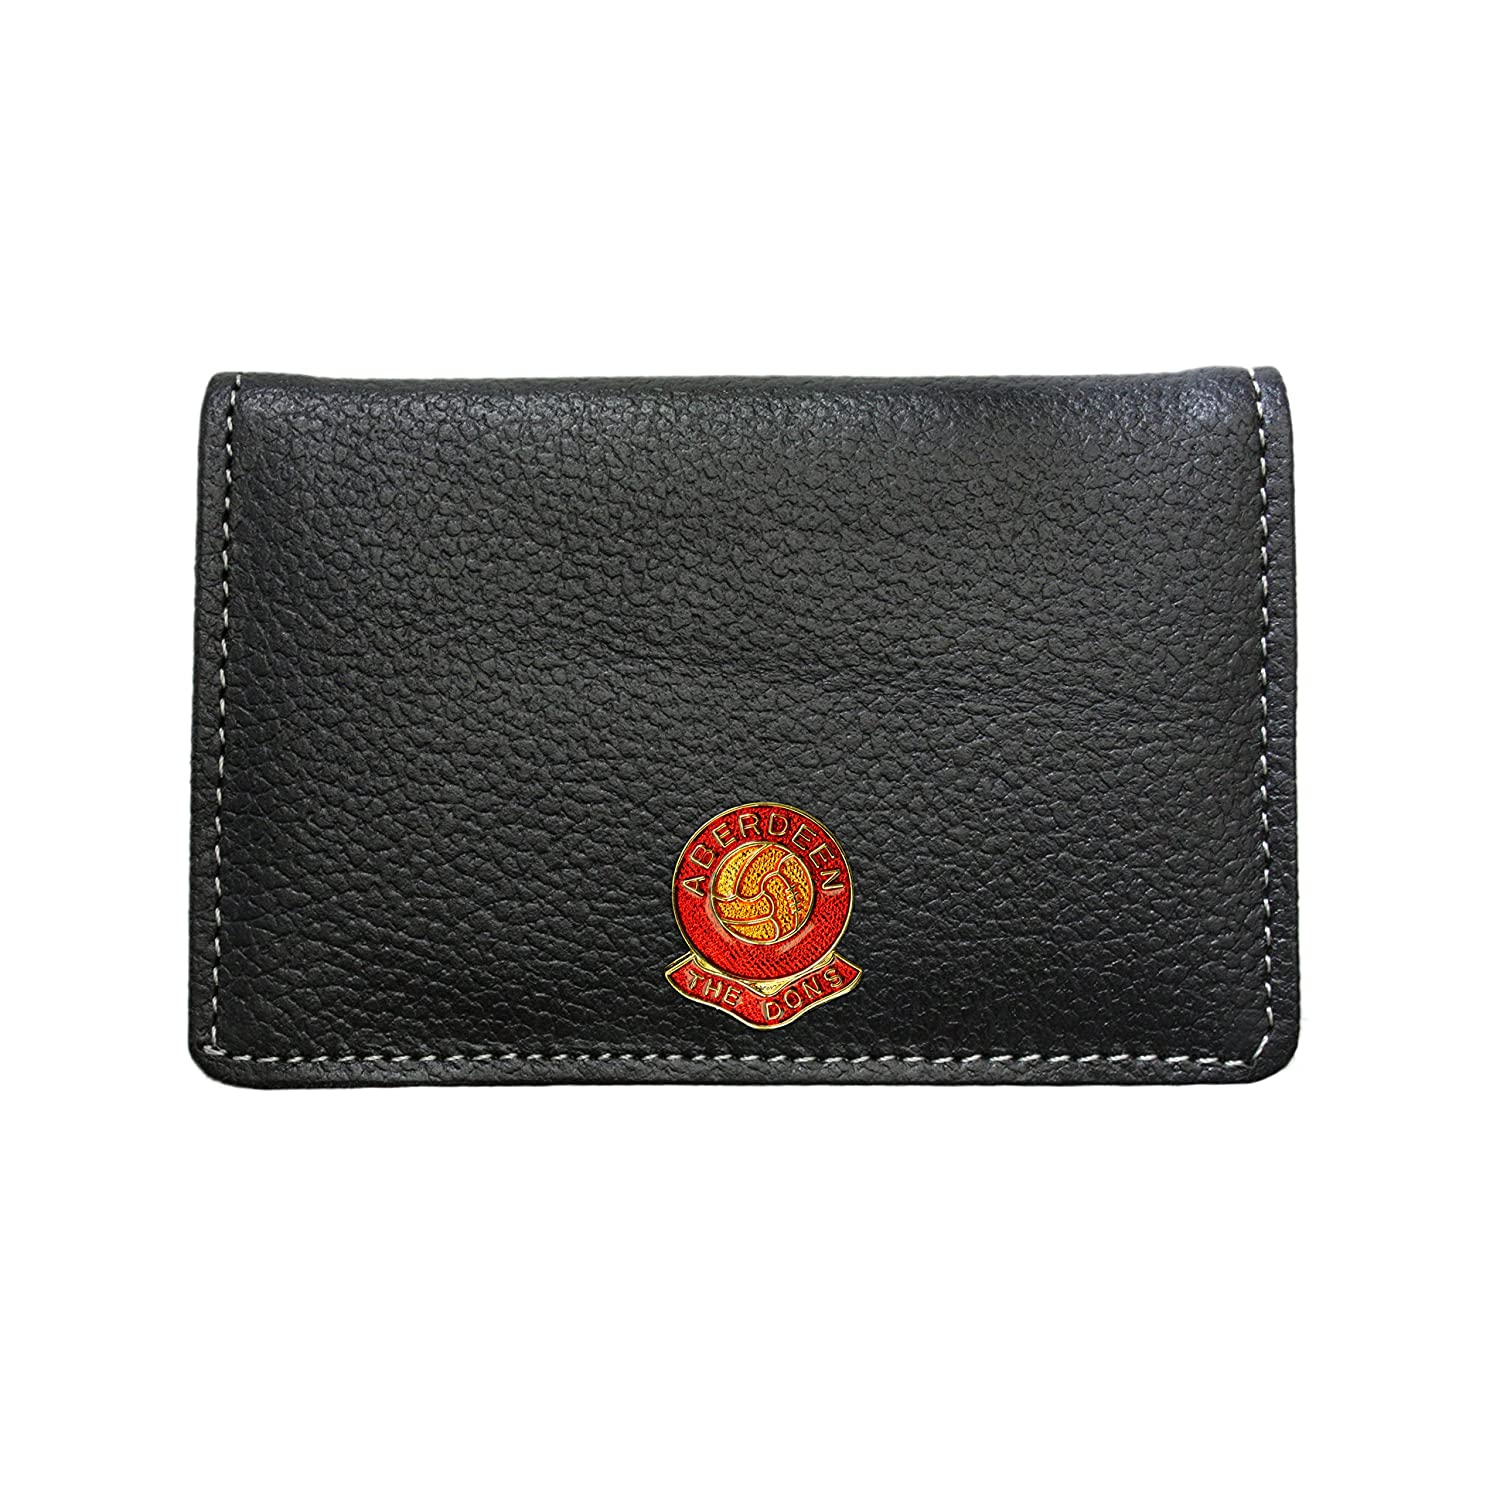 Aberdeen F.C LEATHER WALLET DONS